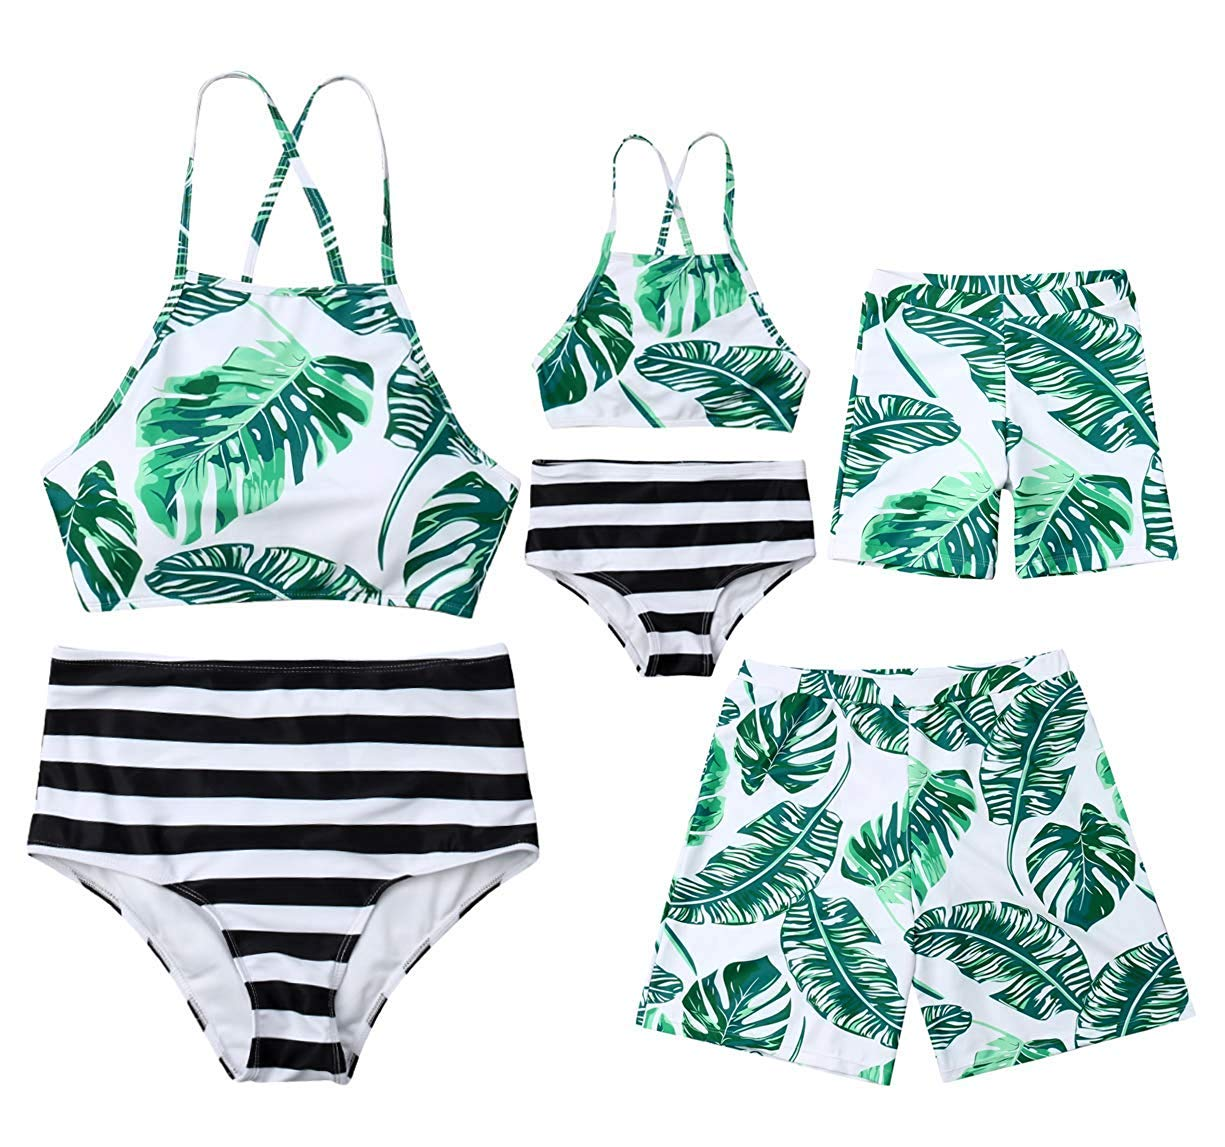 XBTCLXEBCO Baby Girls Swimsuits Mommy and Me Bathing Suits Family Matching Two Piece Bikini Set